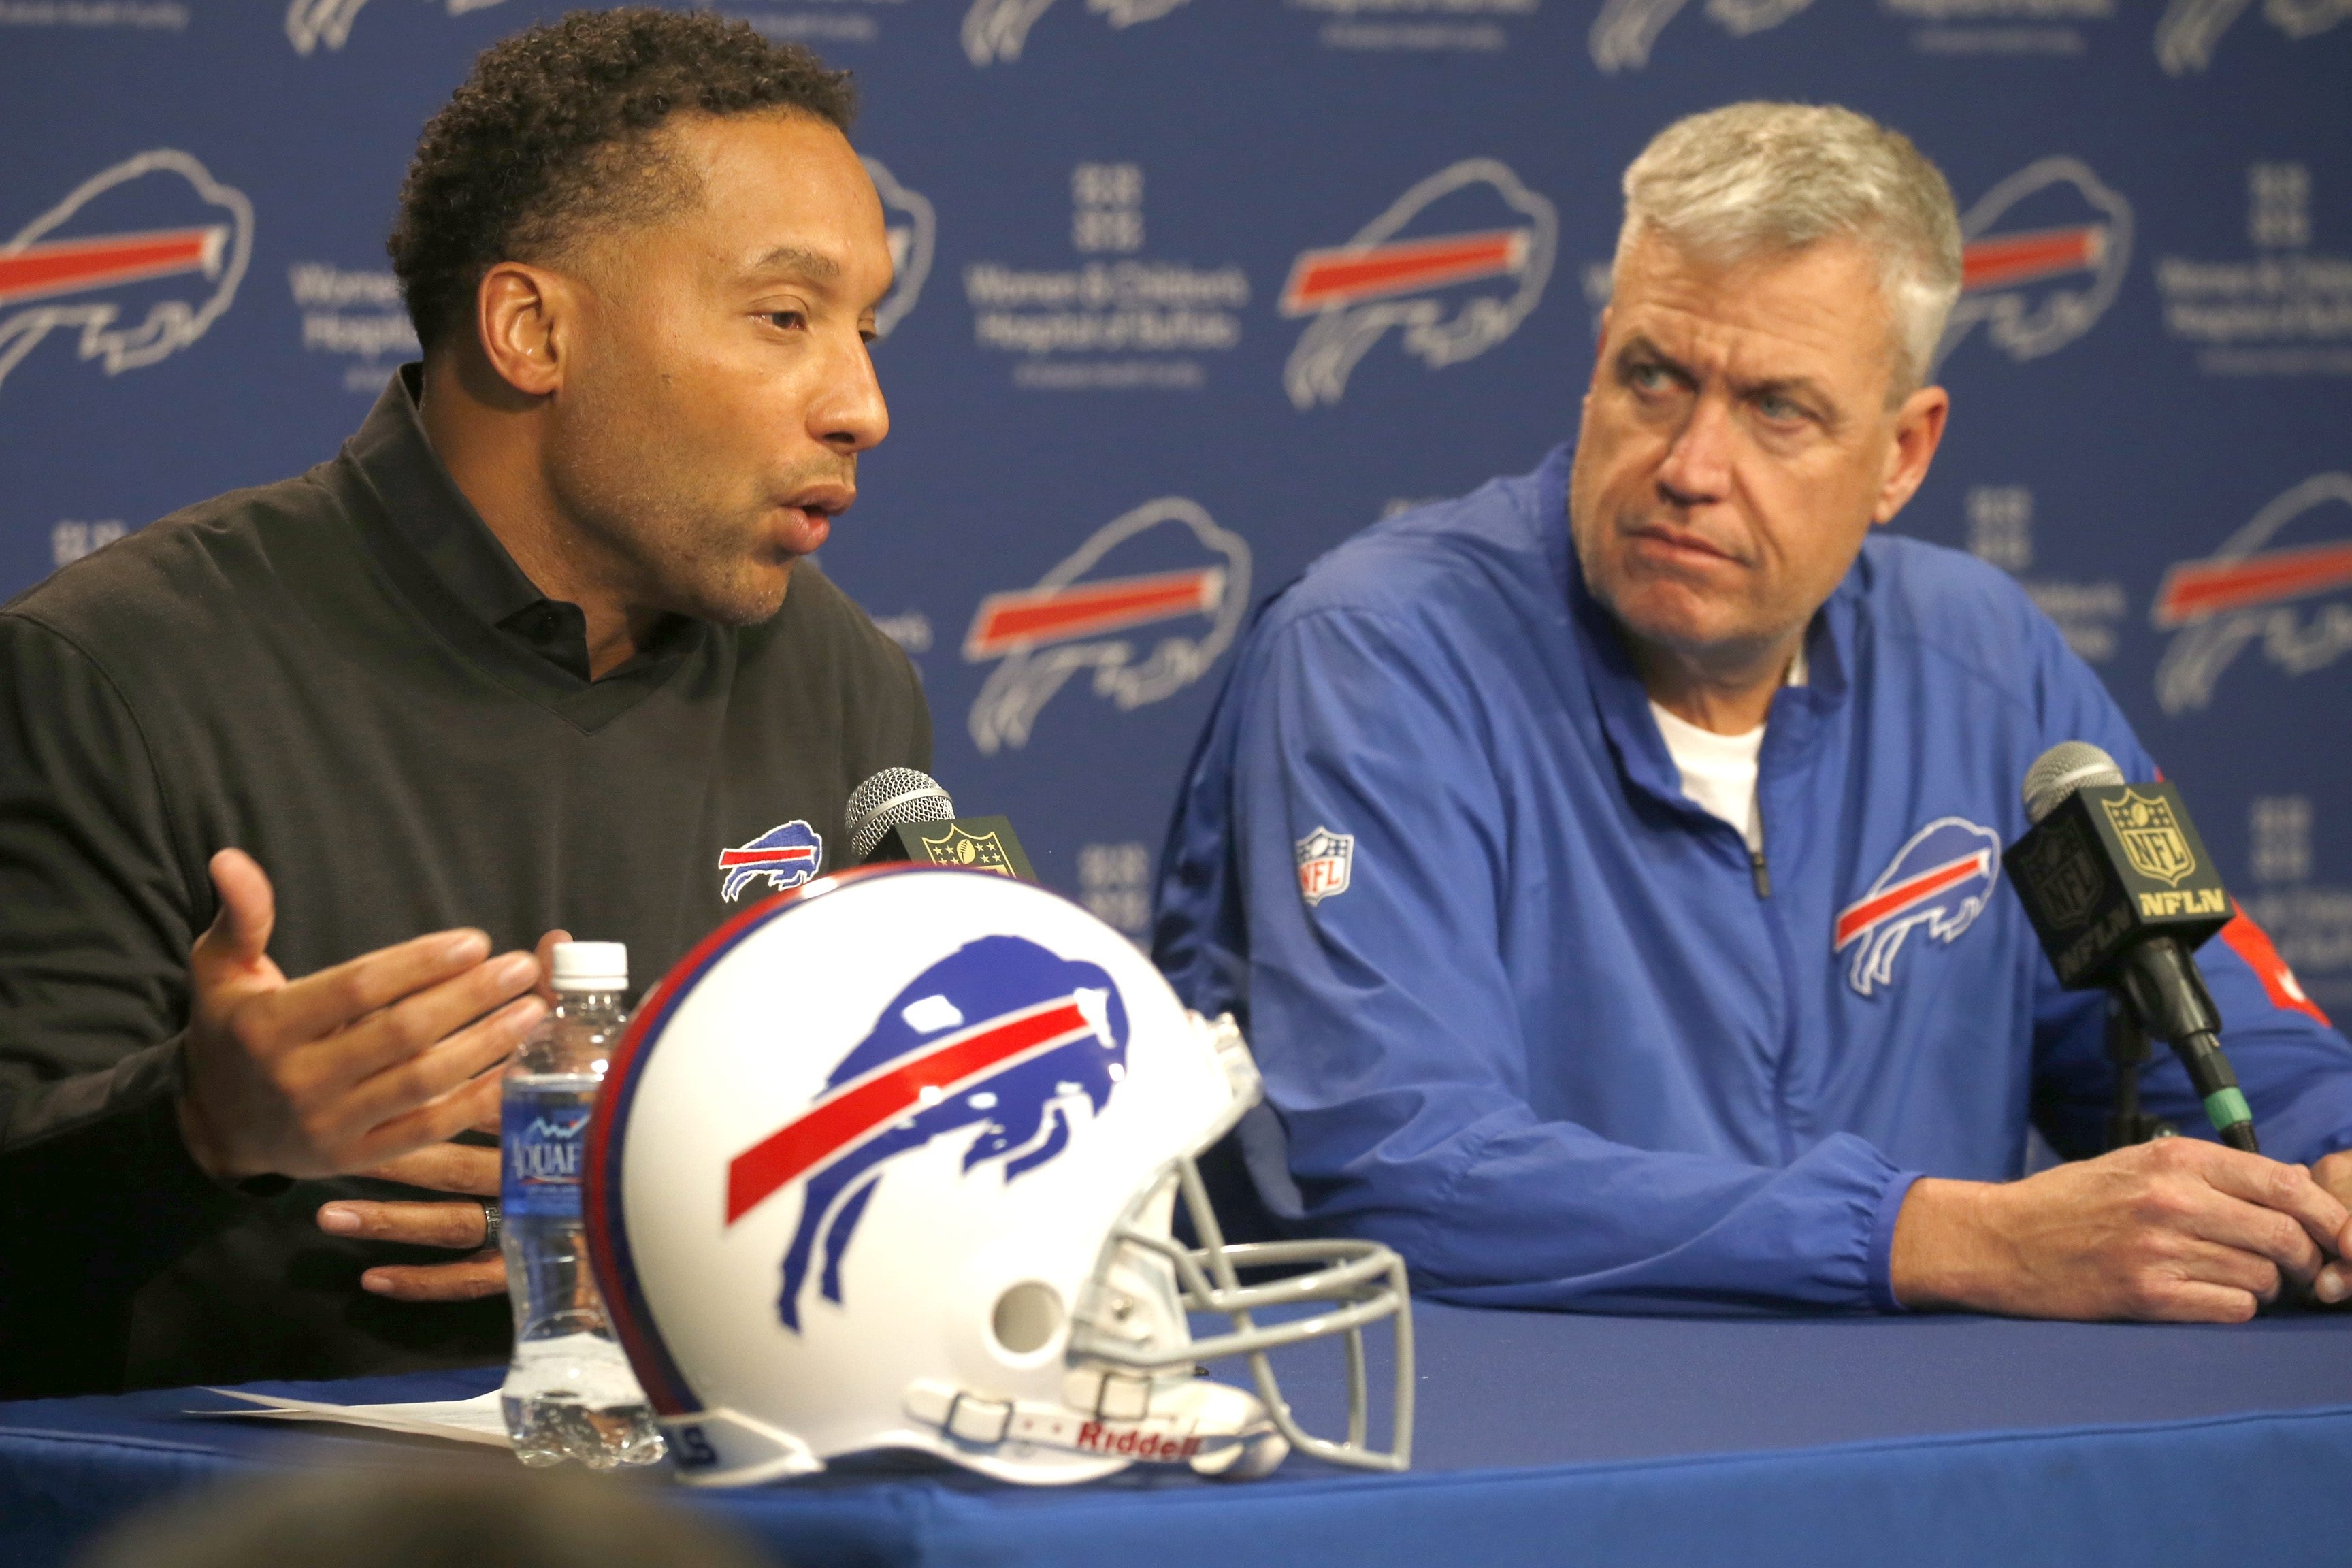 General Manager Doug Whaley, left, raised some eyebrows with his comment about the risk of playing football and coach Rex Ryan wants no share of the blame for the new media policy. (Robert Kirkham/Buffalo News file photo)